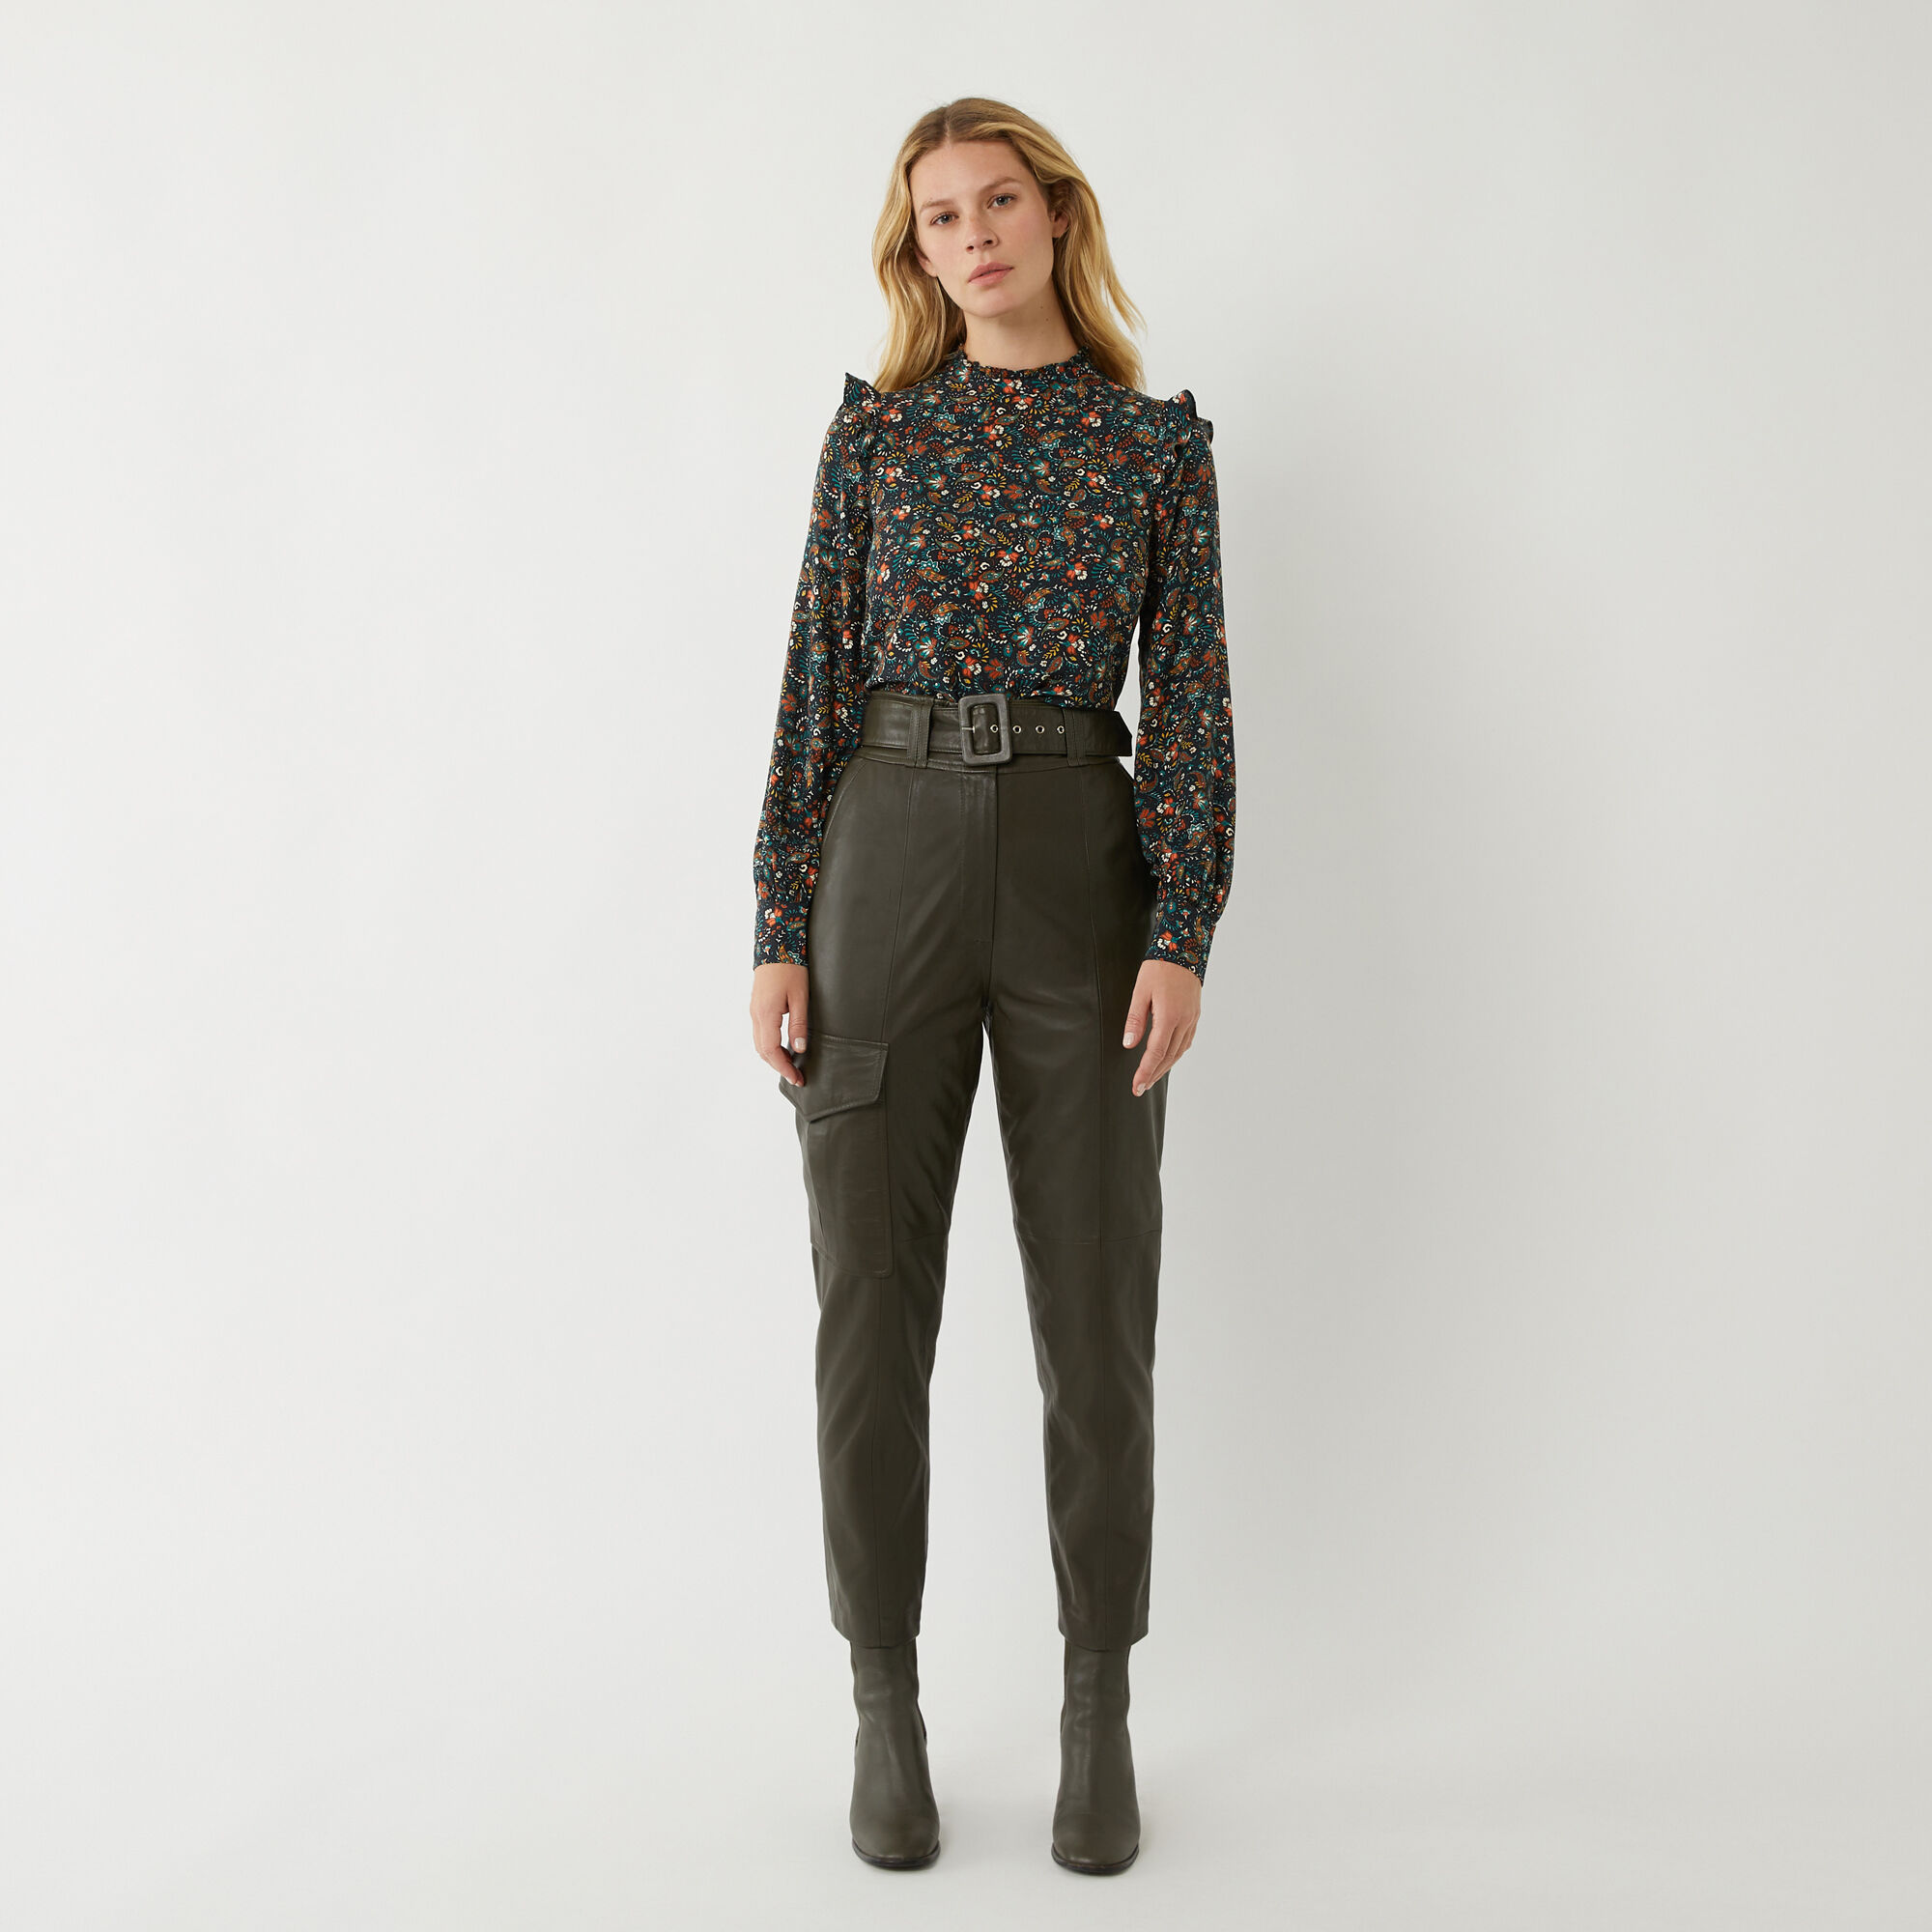 Warehouse, PAISLEY DITSY FLORAL TOP Multi 1